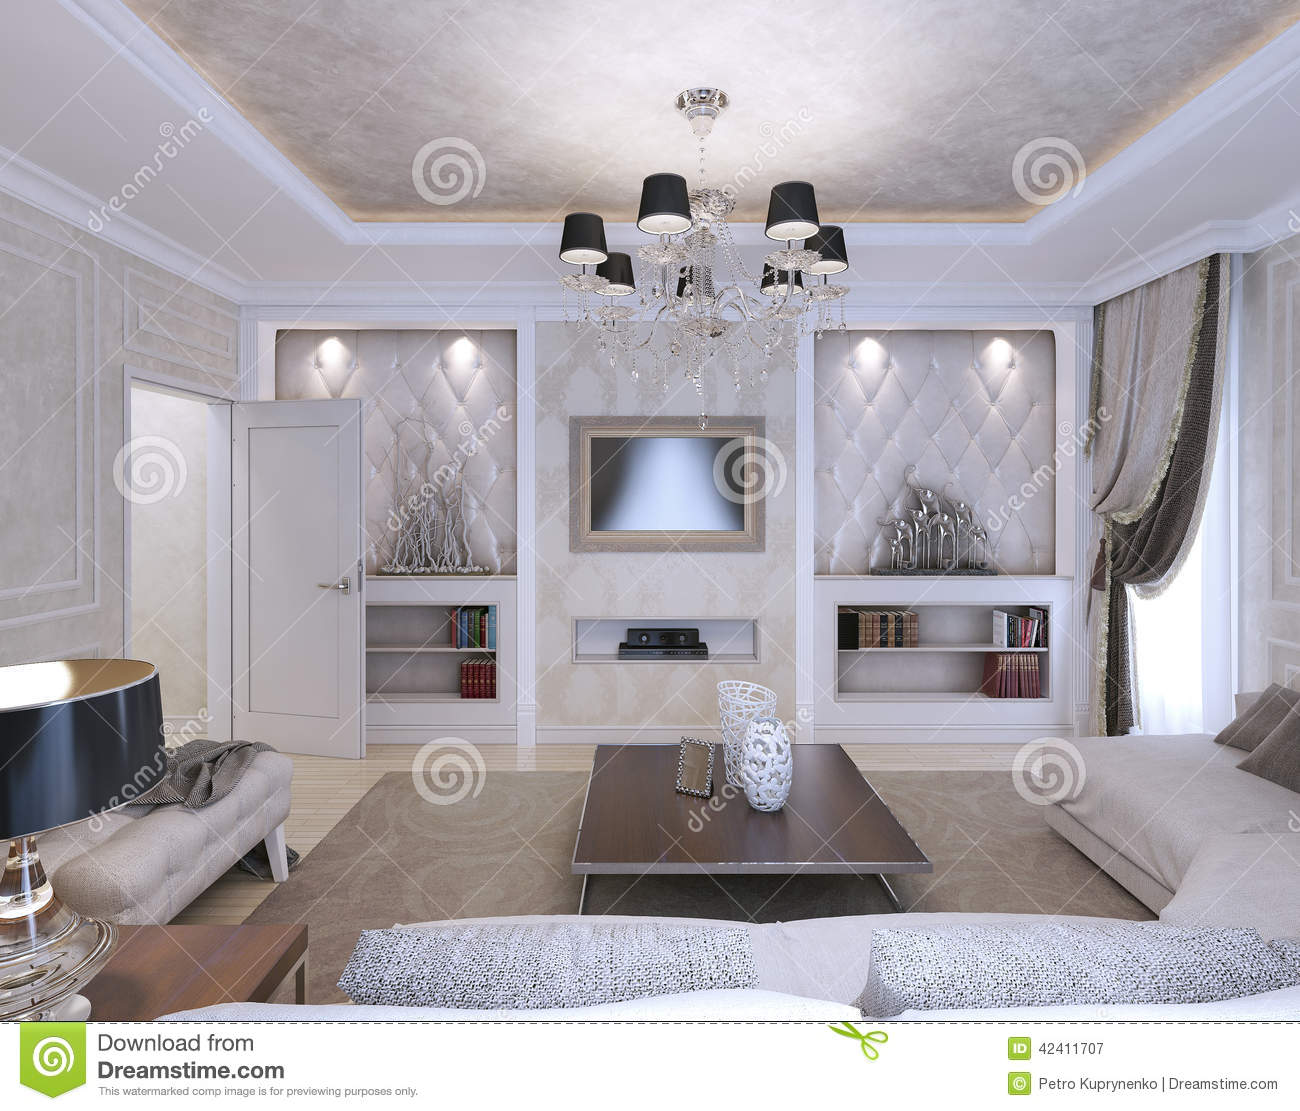 salon style d 39 art d co style classique illustration stock image 42411707. Black Bedroom Furniture Sets. Home Design Ideas